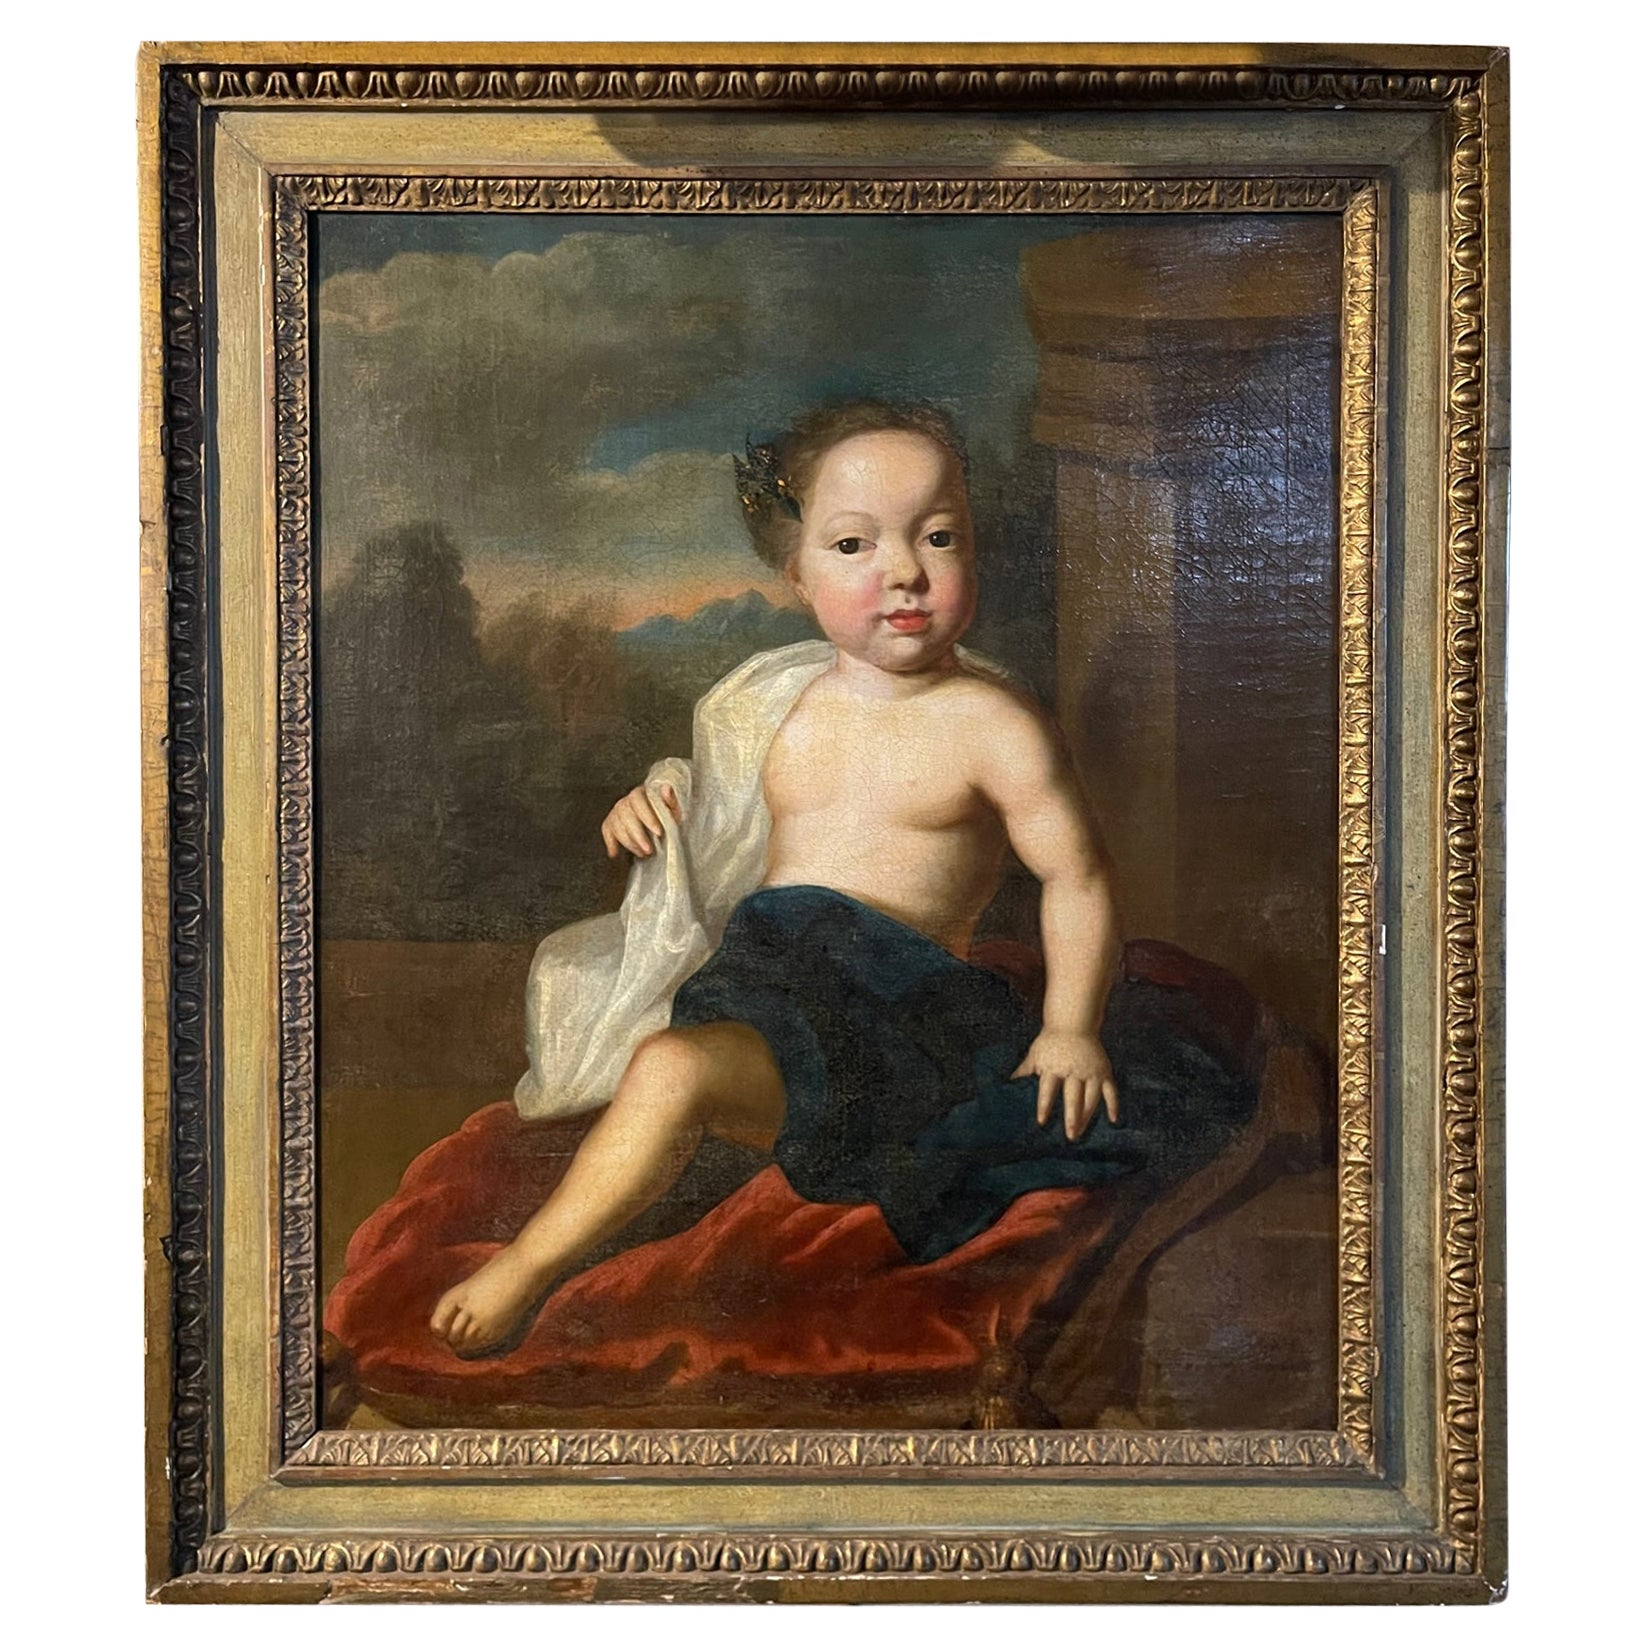 Framed Oil on Canvas Portrait of a Child, 19th Century